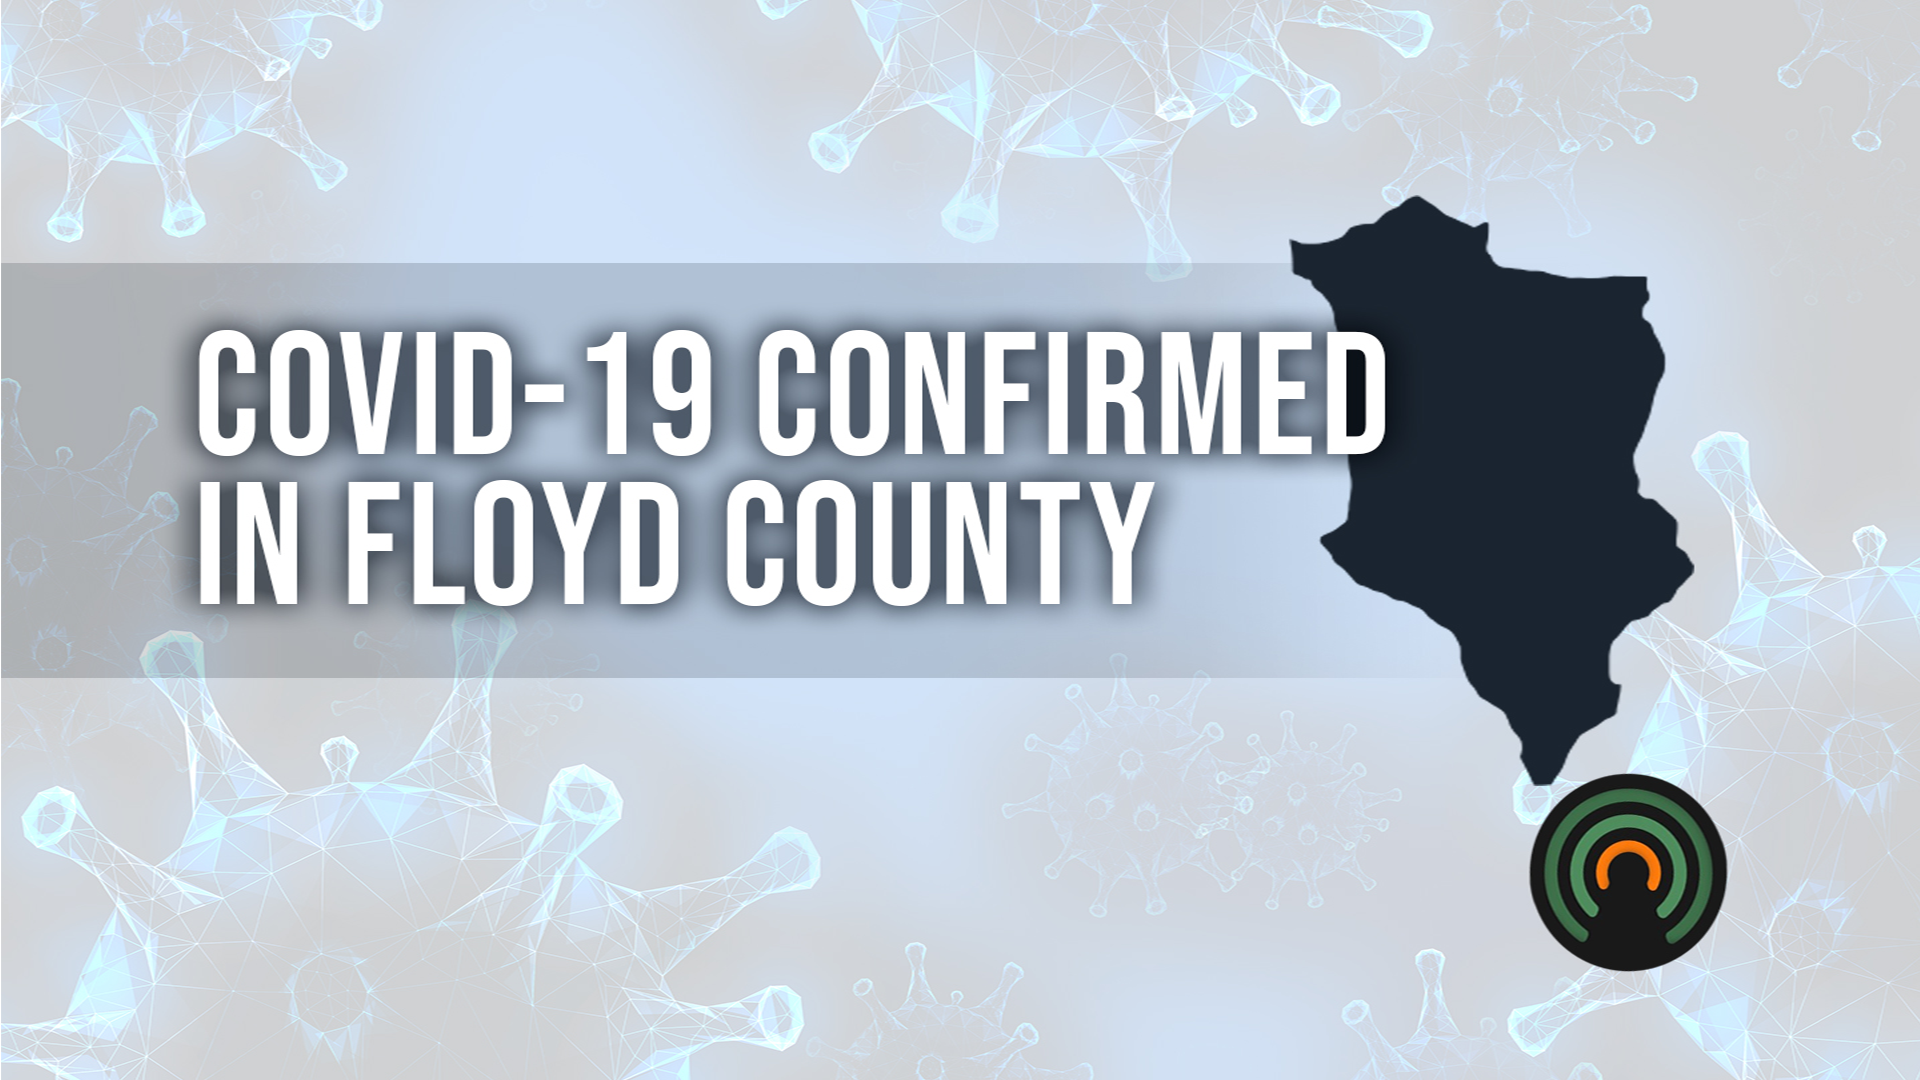 Health officials confirm an additional case of COVID-19 in Floyd County, KY